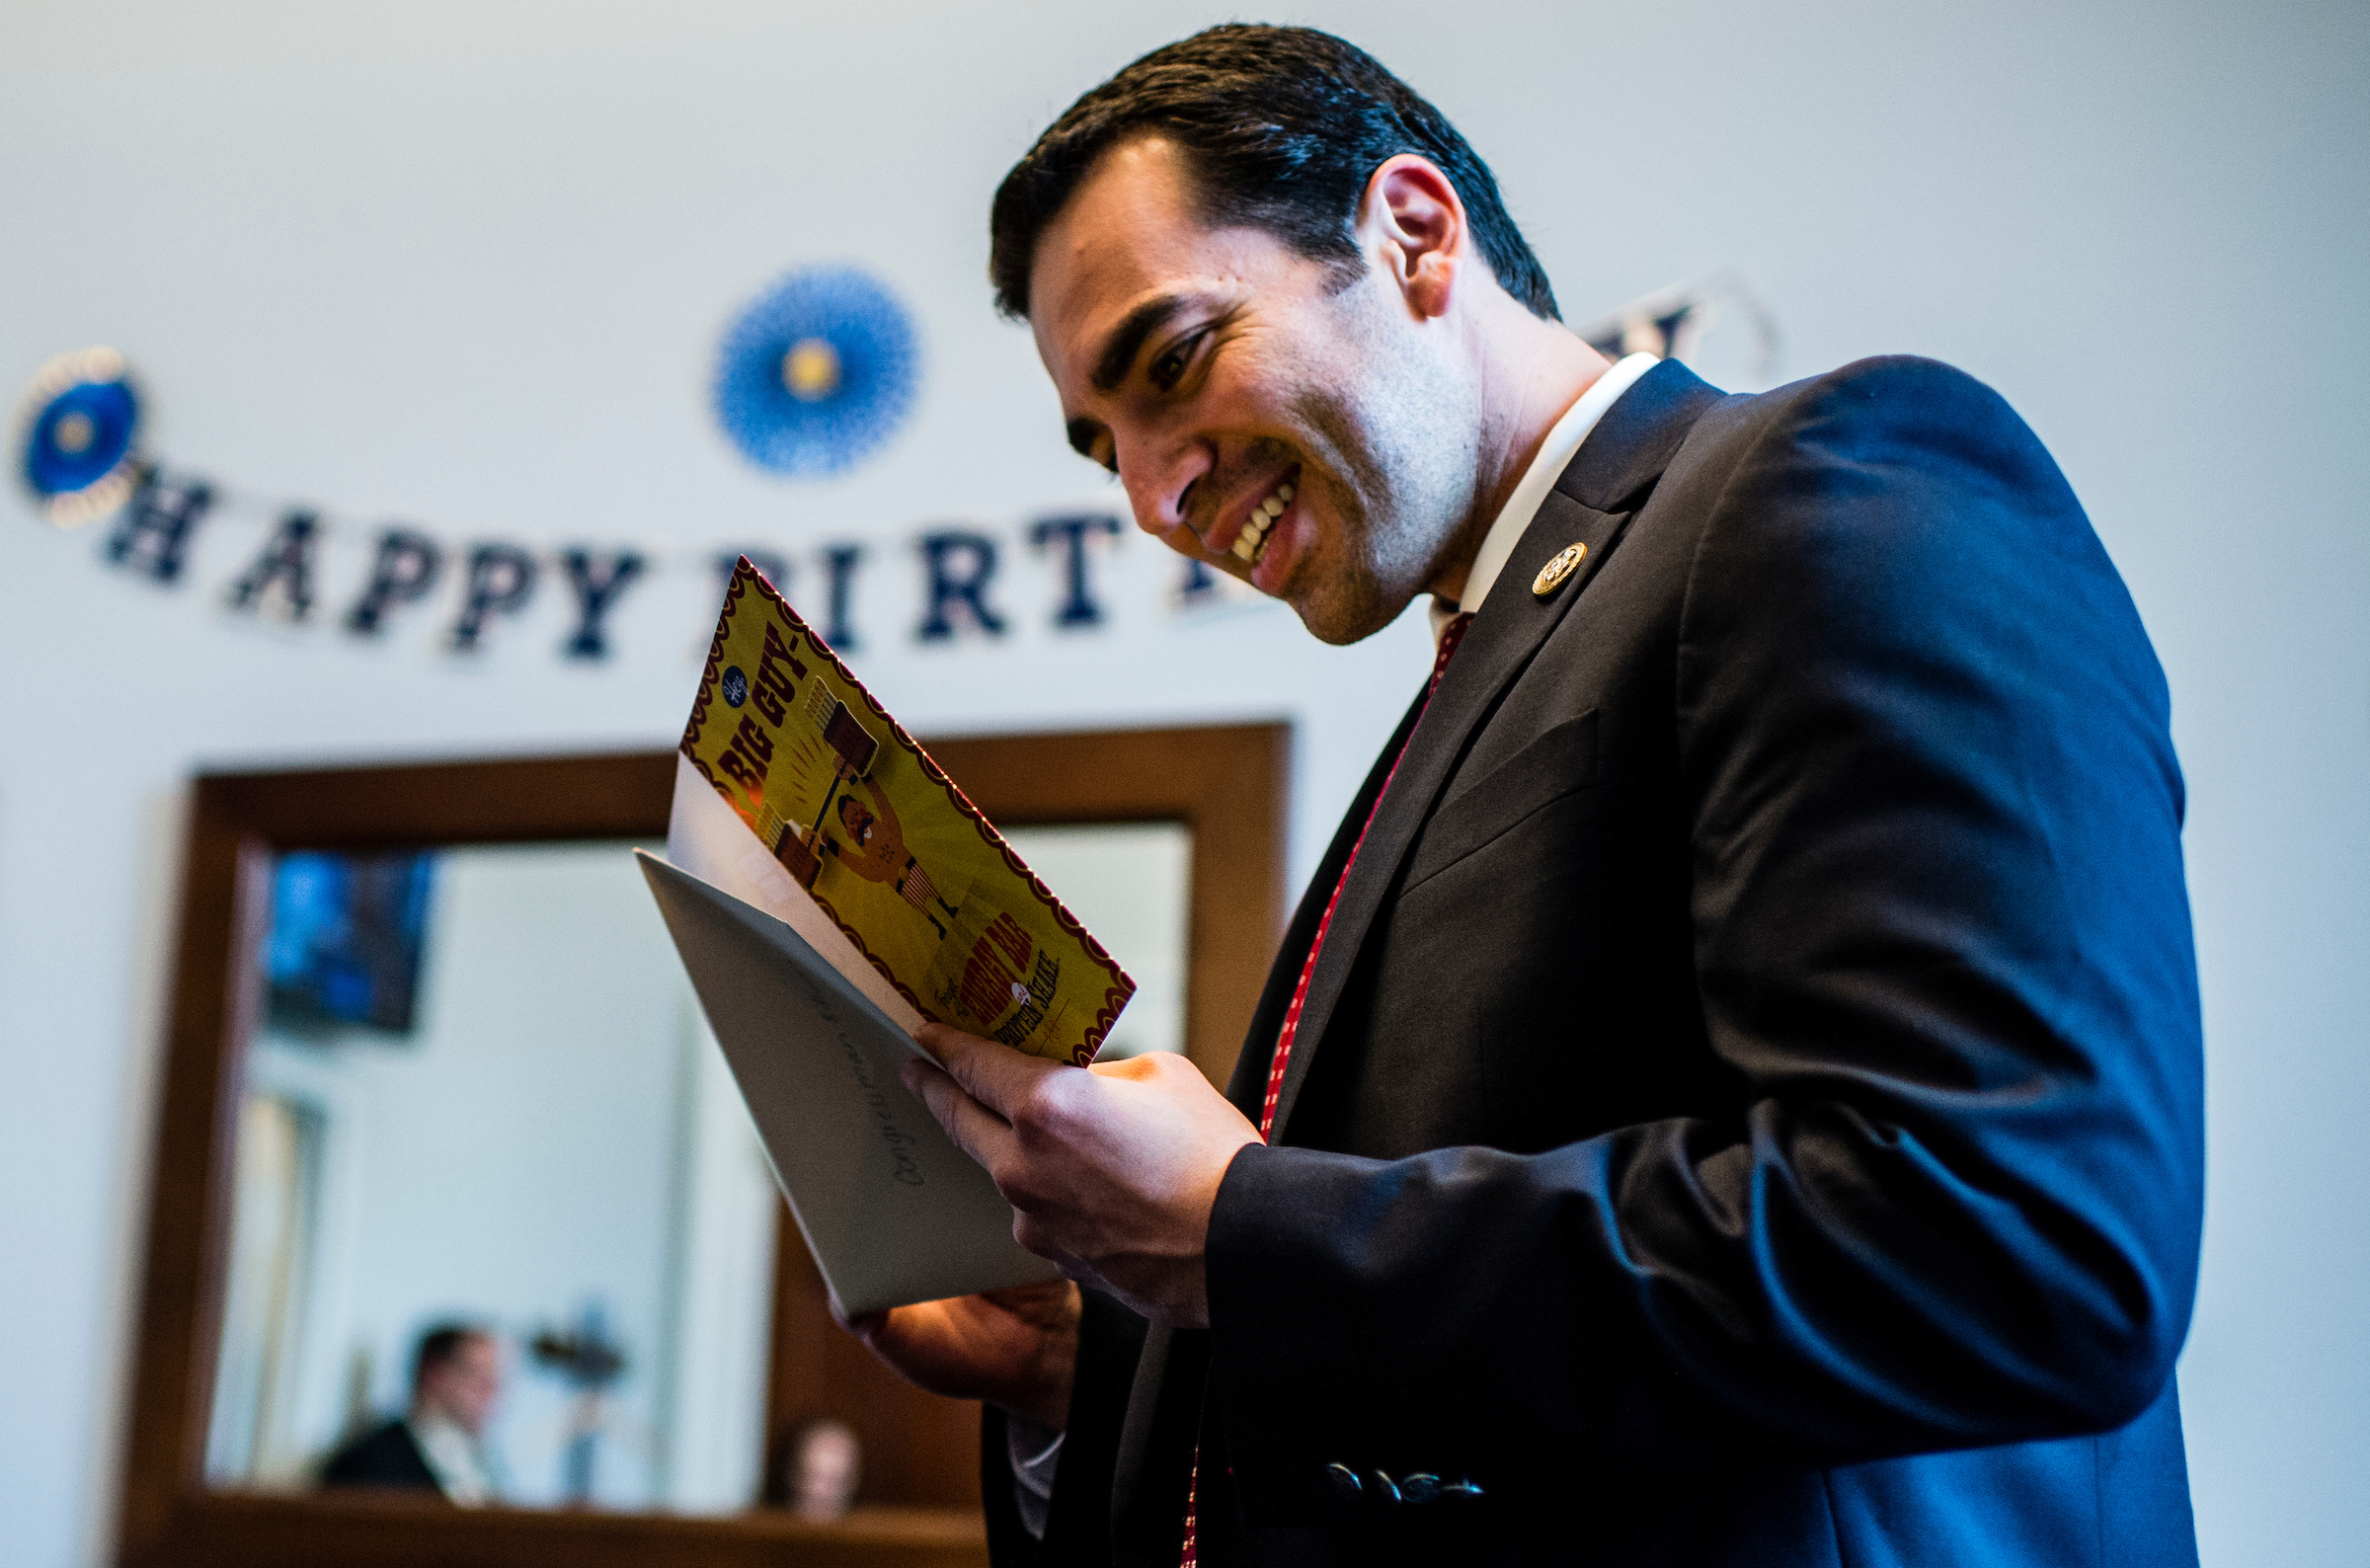 UNITED STATES - APRIL 25: Rep. Ruben Kihuen, D-Nev., reads a birthday card after his staff surprised him with birthday cake in his office on Tuesday, April 25, 2017. (Photo By Bill Clark/CQ Roll Call)